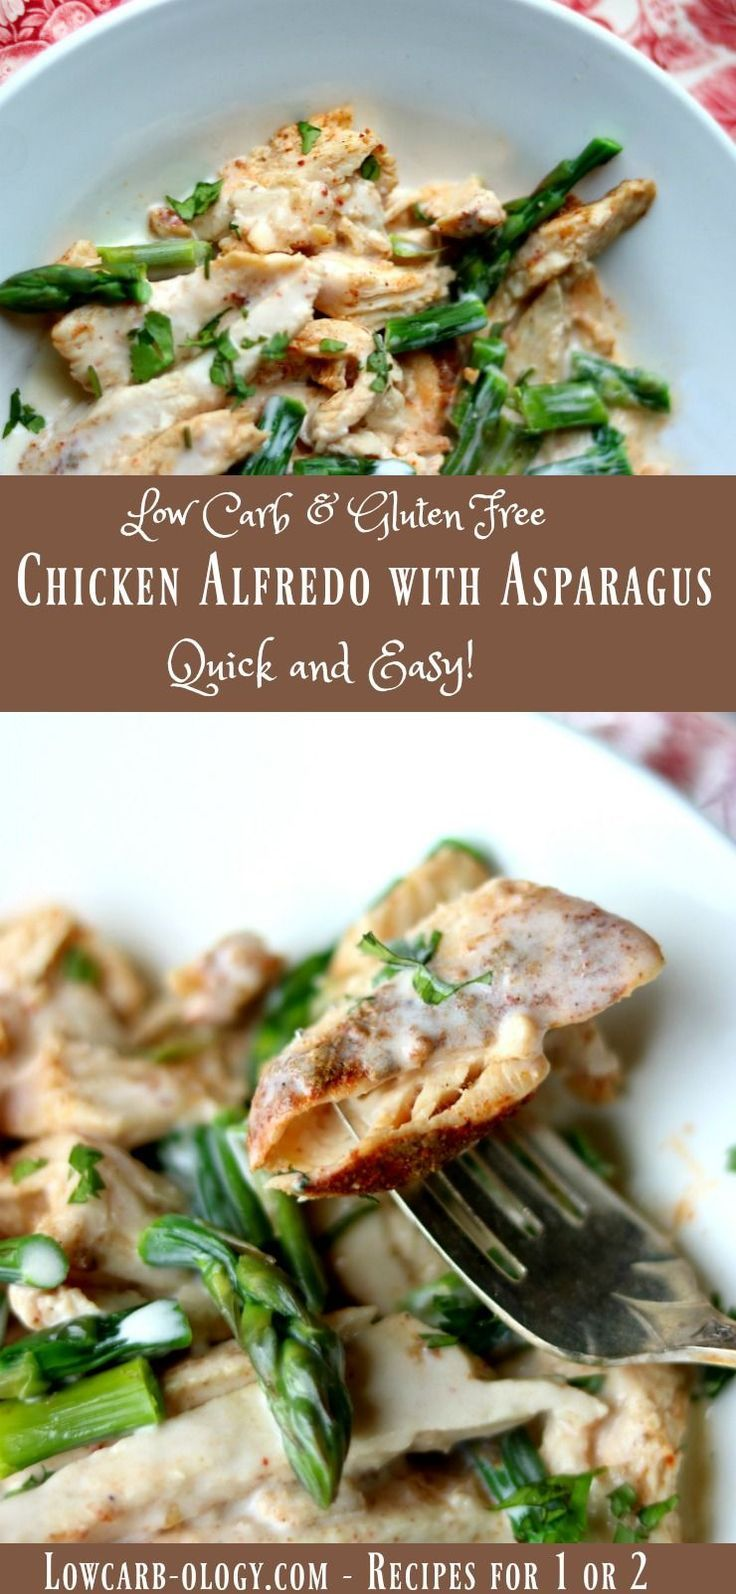 Asparagus Chicken Alfredo Recipe: Creamy Low Carb Indulgence | Lowcarb-ology